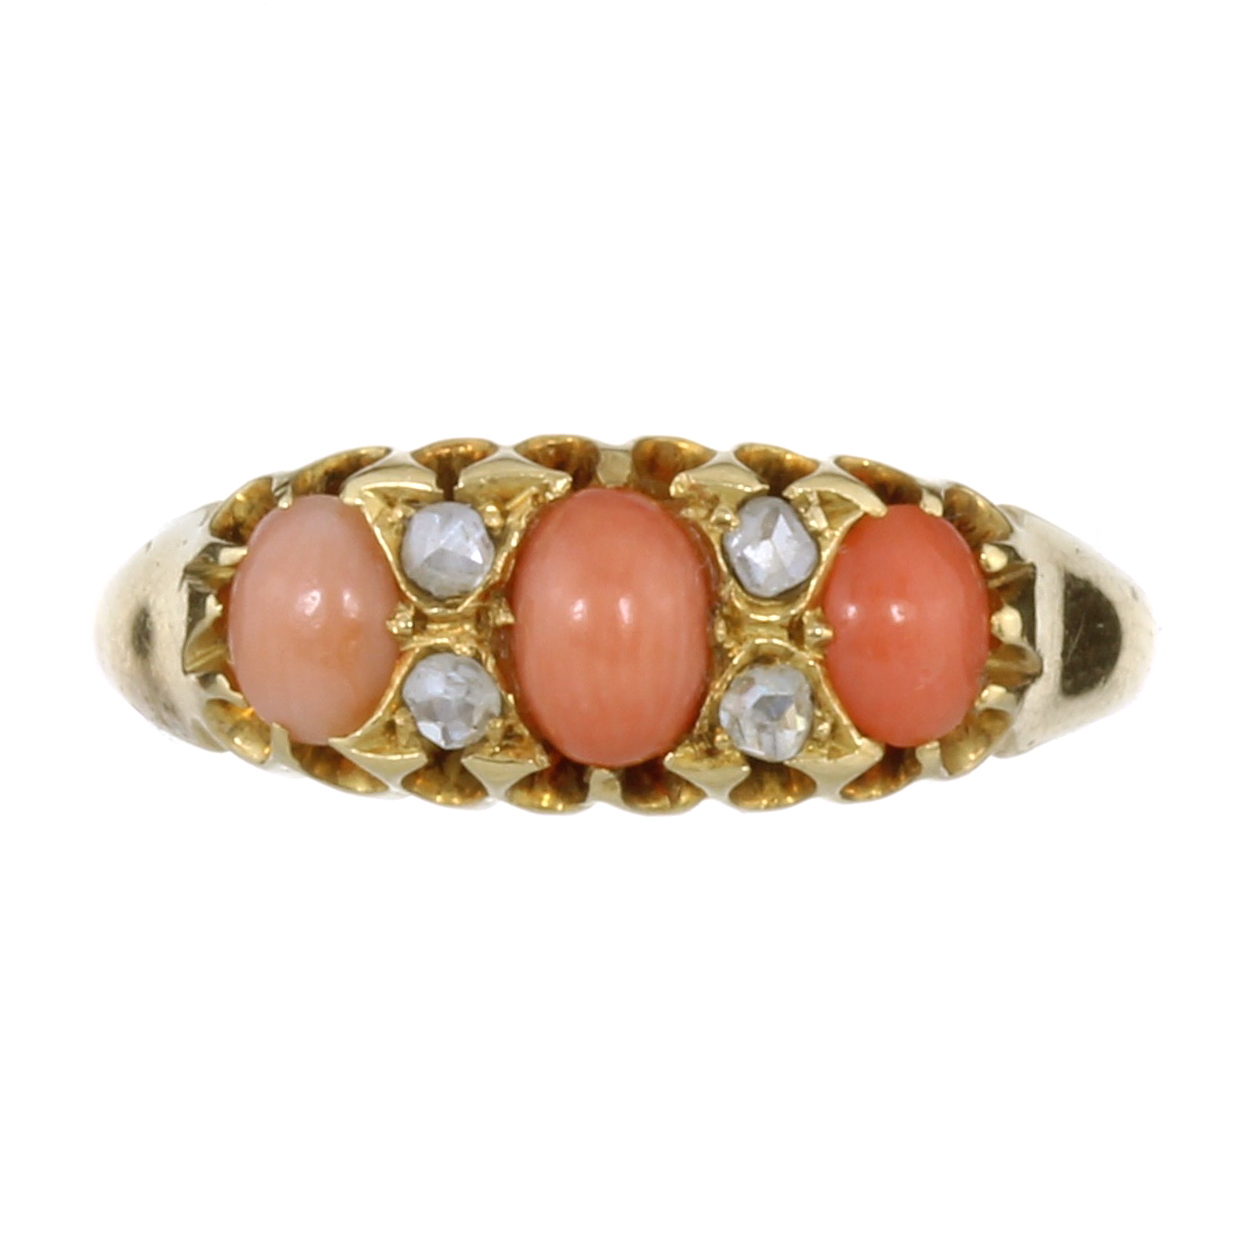 AN ANTIQUE VICTORIAN CORAL AND DIAMOND RING, 1898 in 18ct yellow gold, set with three graduated oval